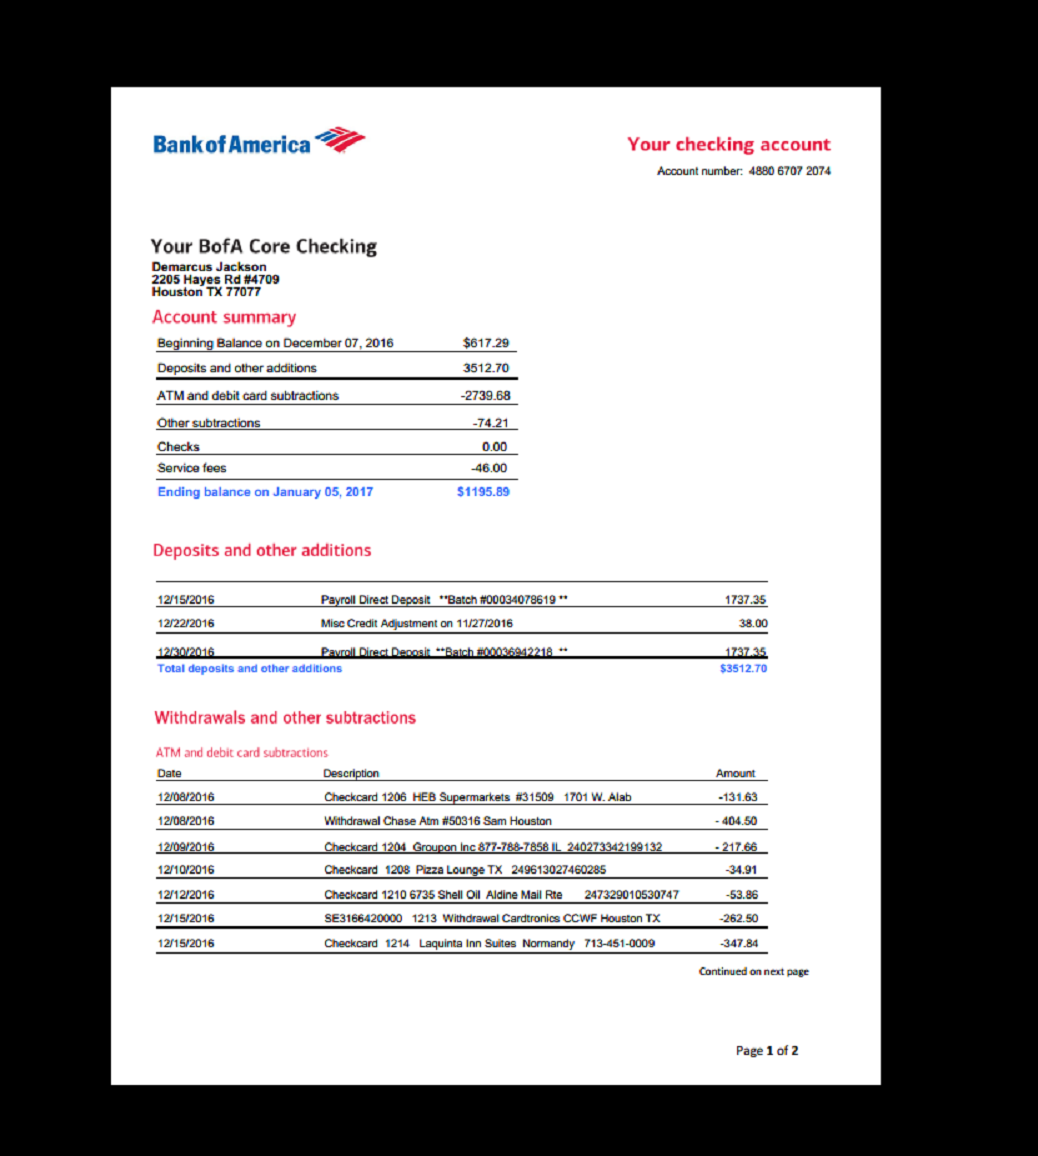 bank of america bank statement  Bank Statement, Bank America in 2019 | Fake Documents ..